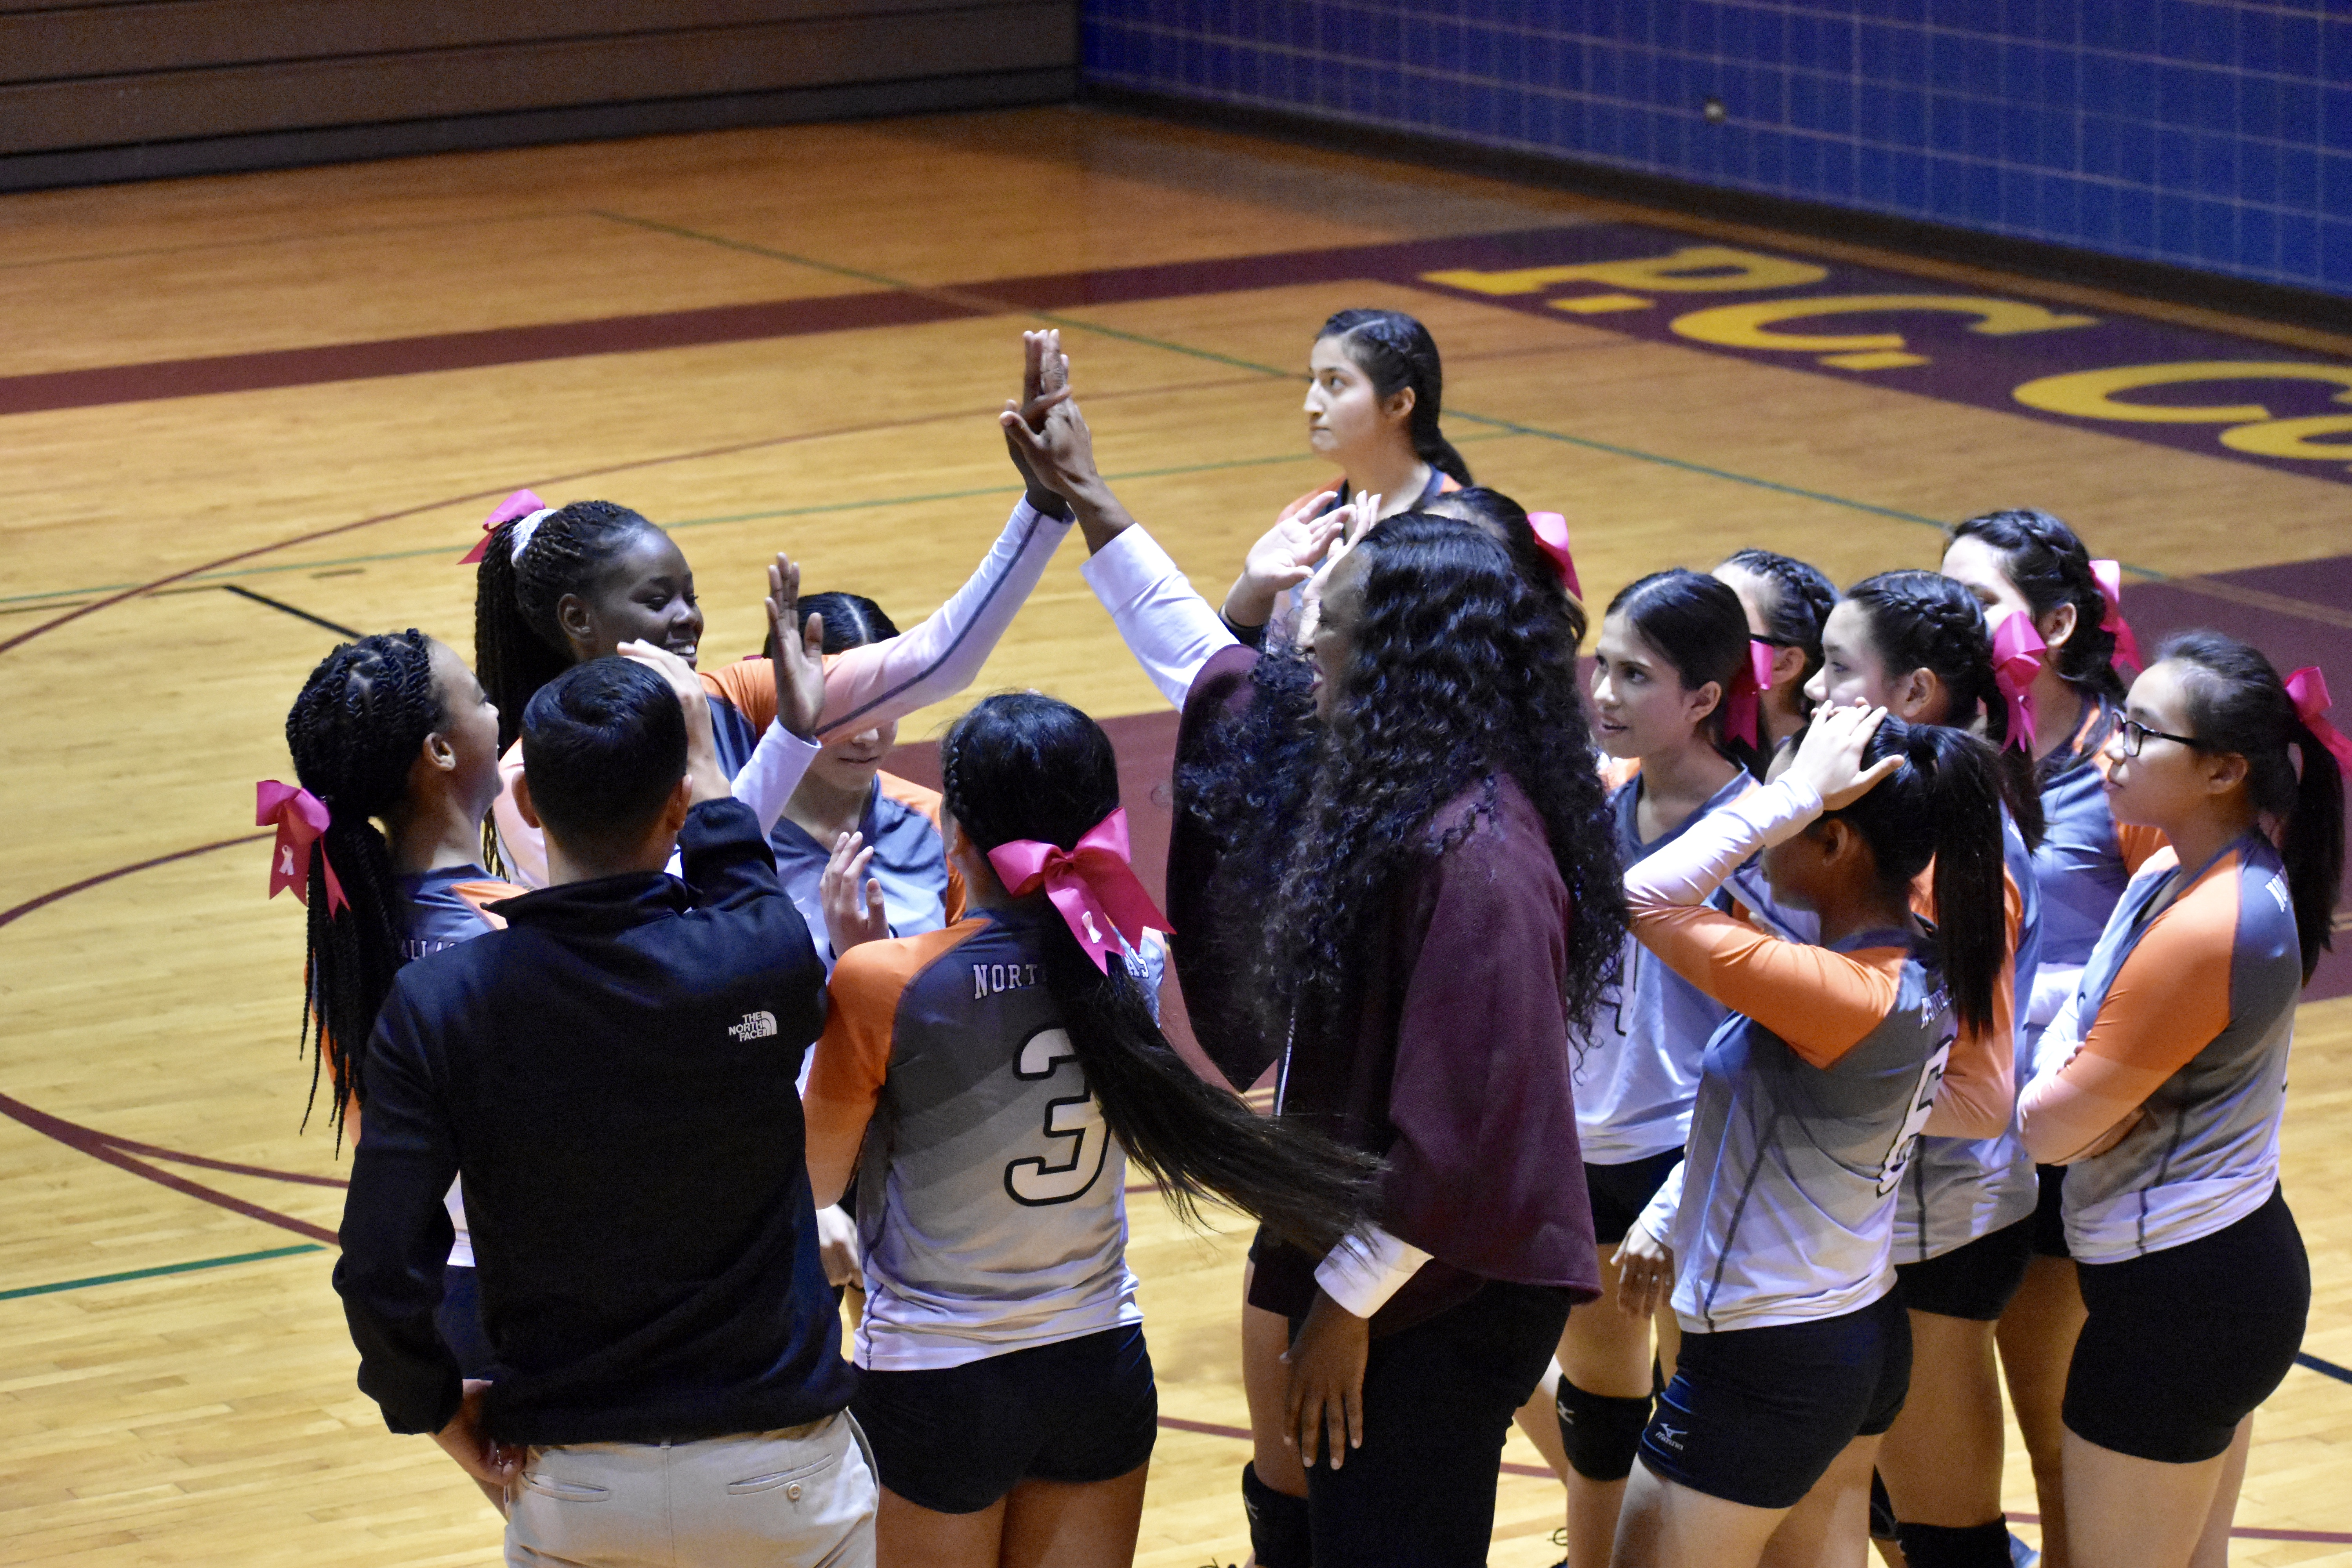 Lady Bulldogs find the winning combination at right time, playoffs are in sight